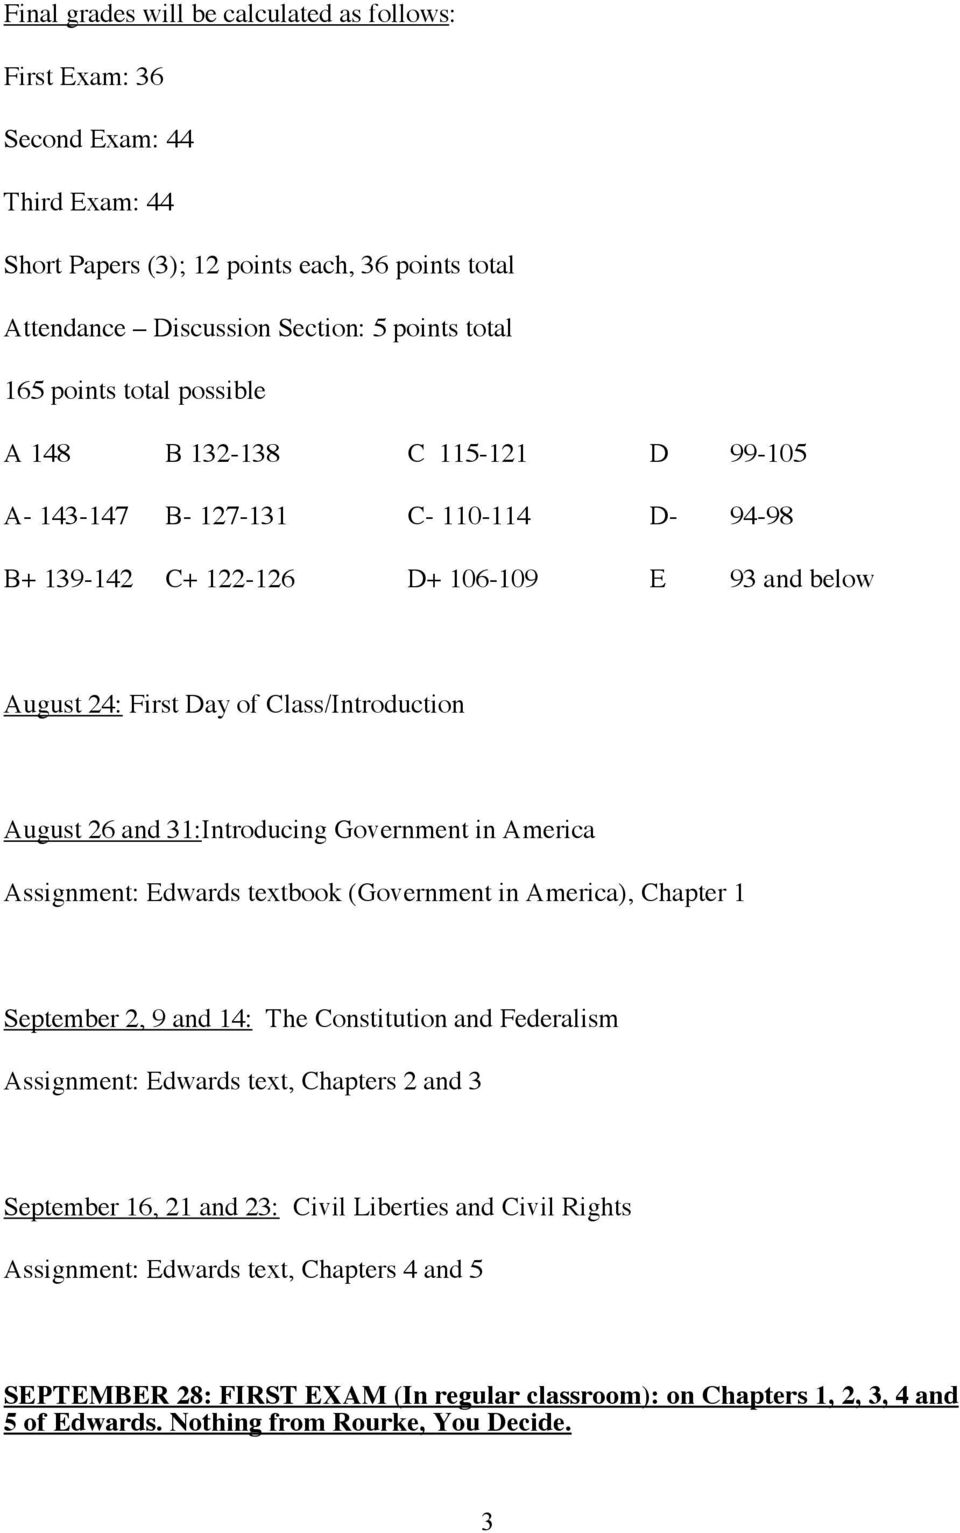 31:Introducing Government in America Assignment: Edwards textbook (Government in America), Chapter 1 September 2, 9 and 14: The Constitution and Federalism Assignment: Edwards text, Chapters 2 and 3